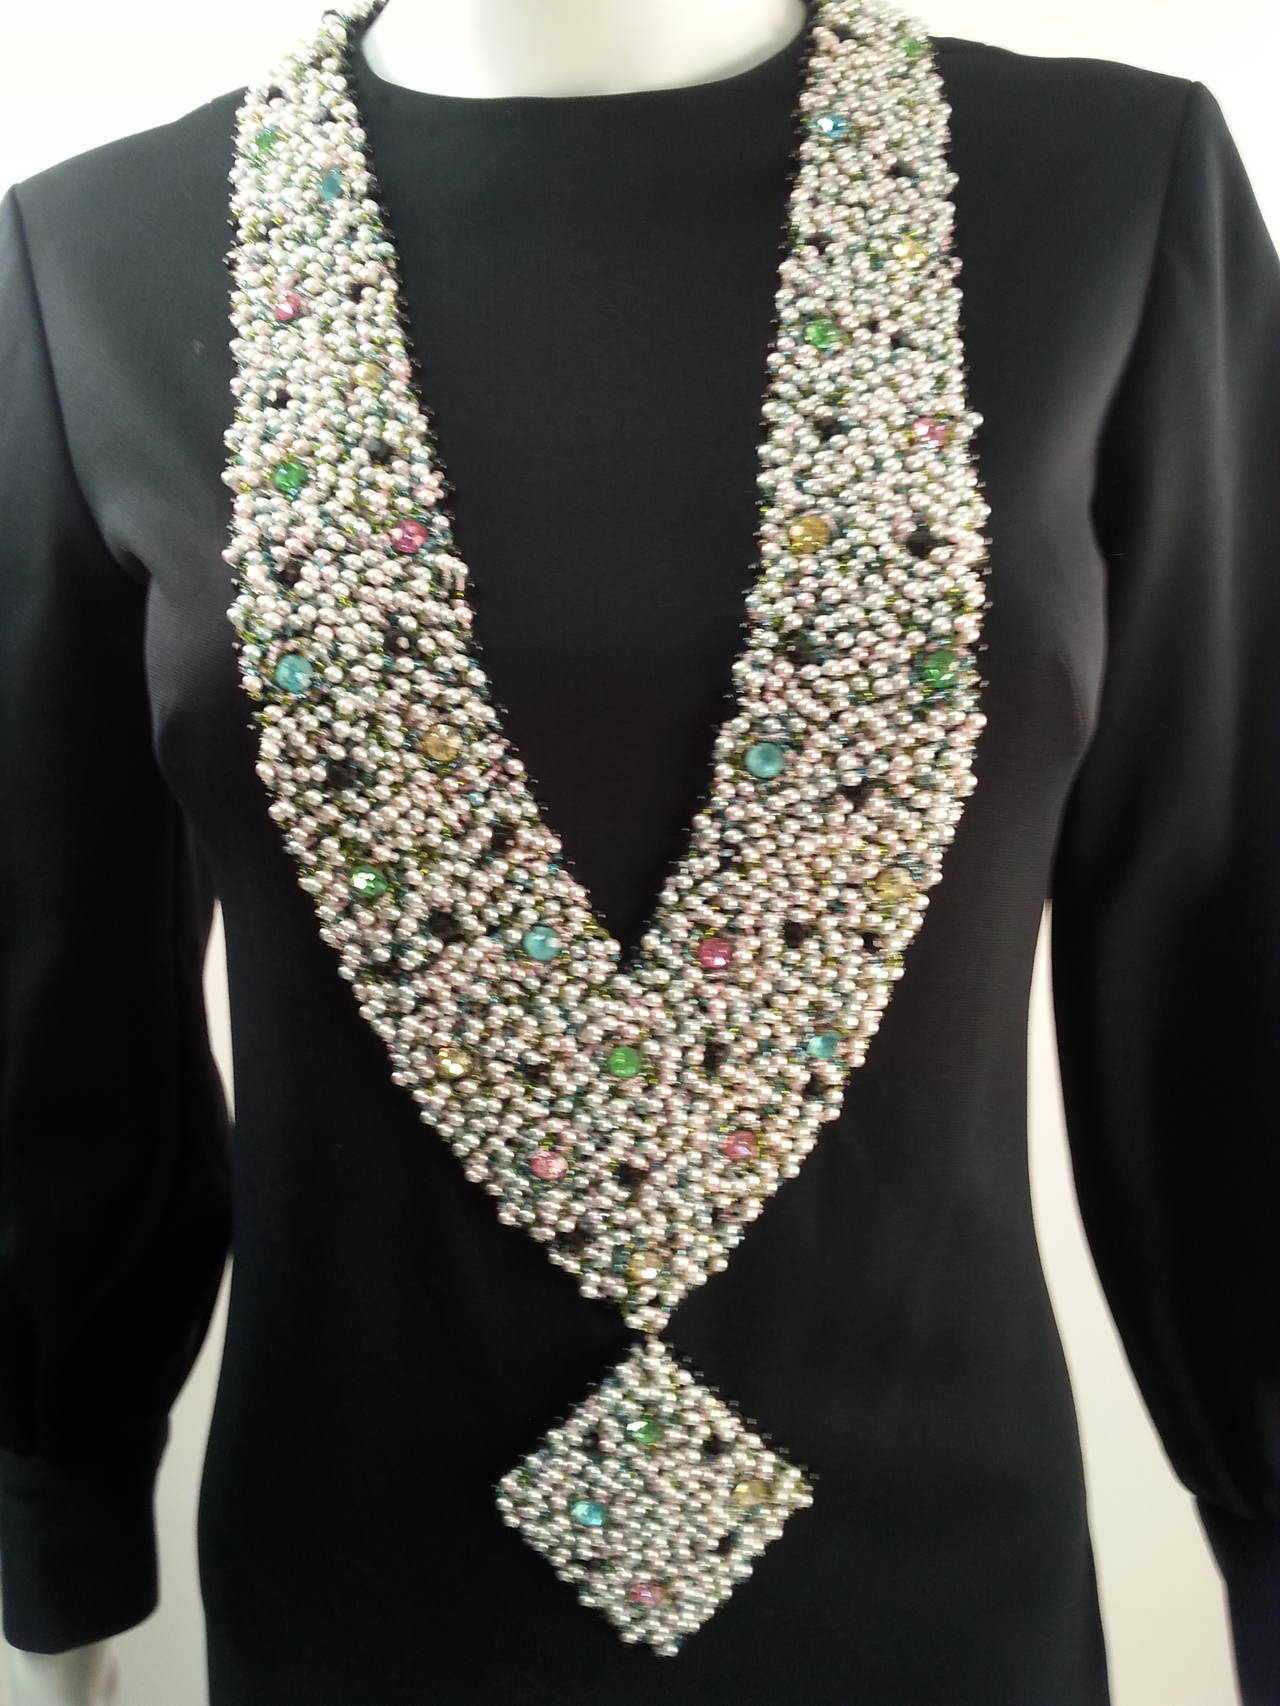 Luxurious black knit dress with show stopping tromp l'oeill necklace. Necklace is made of encrusted tiny pearls and pastel crystals embellished atop the fabric. Necklace wraps around the neck, past the waist, ending with a large diamond pendant.